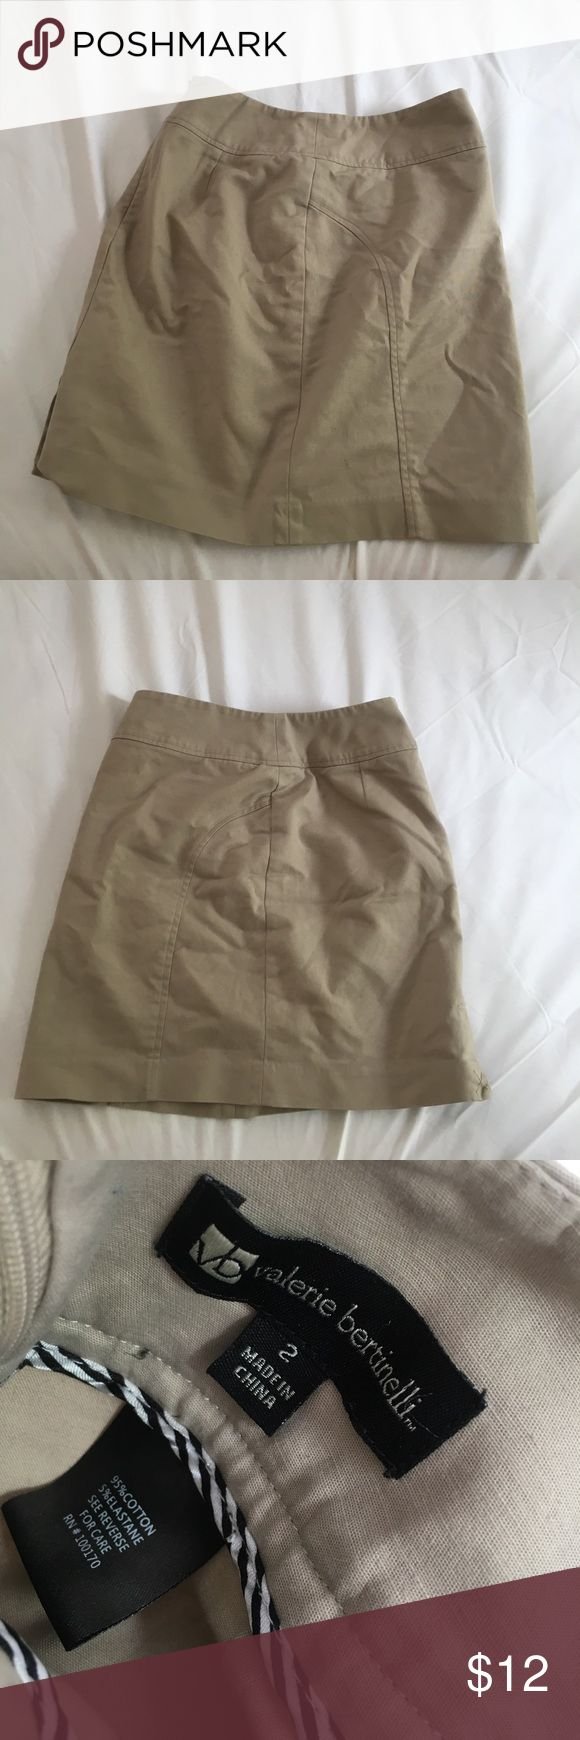 Valerie Bertinelli Tan Pencil Skirt Good condition. Nice material. Similar type to JCrew. Says Size 2. But fits me like a 4 J. Crew Skirts Pencil